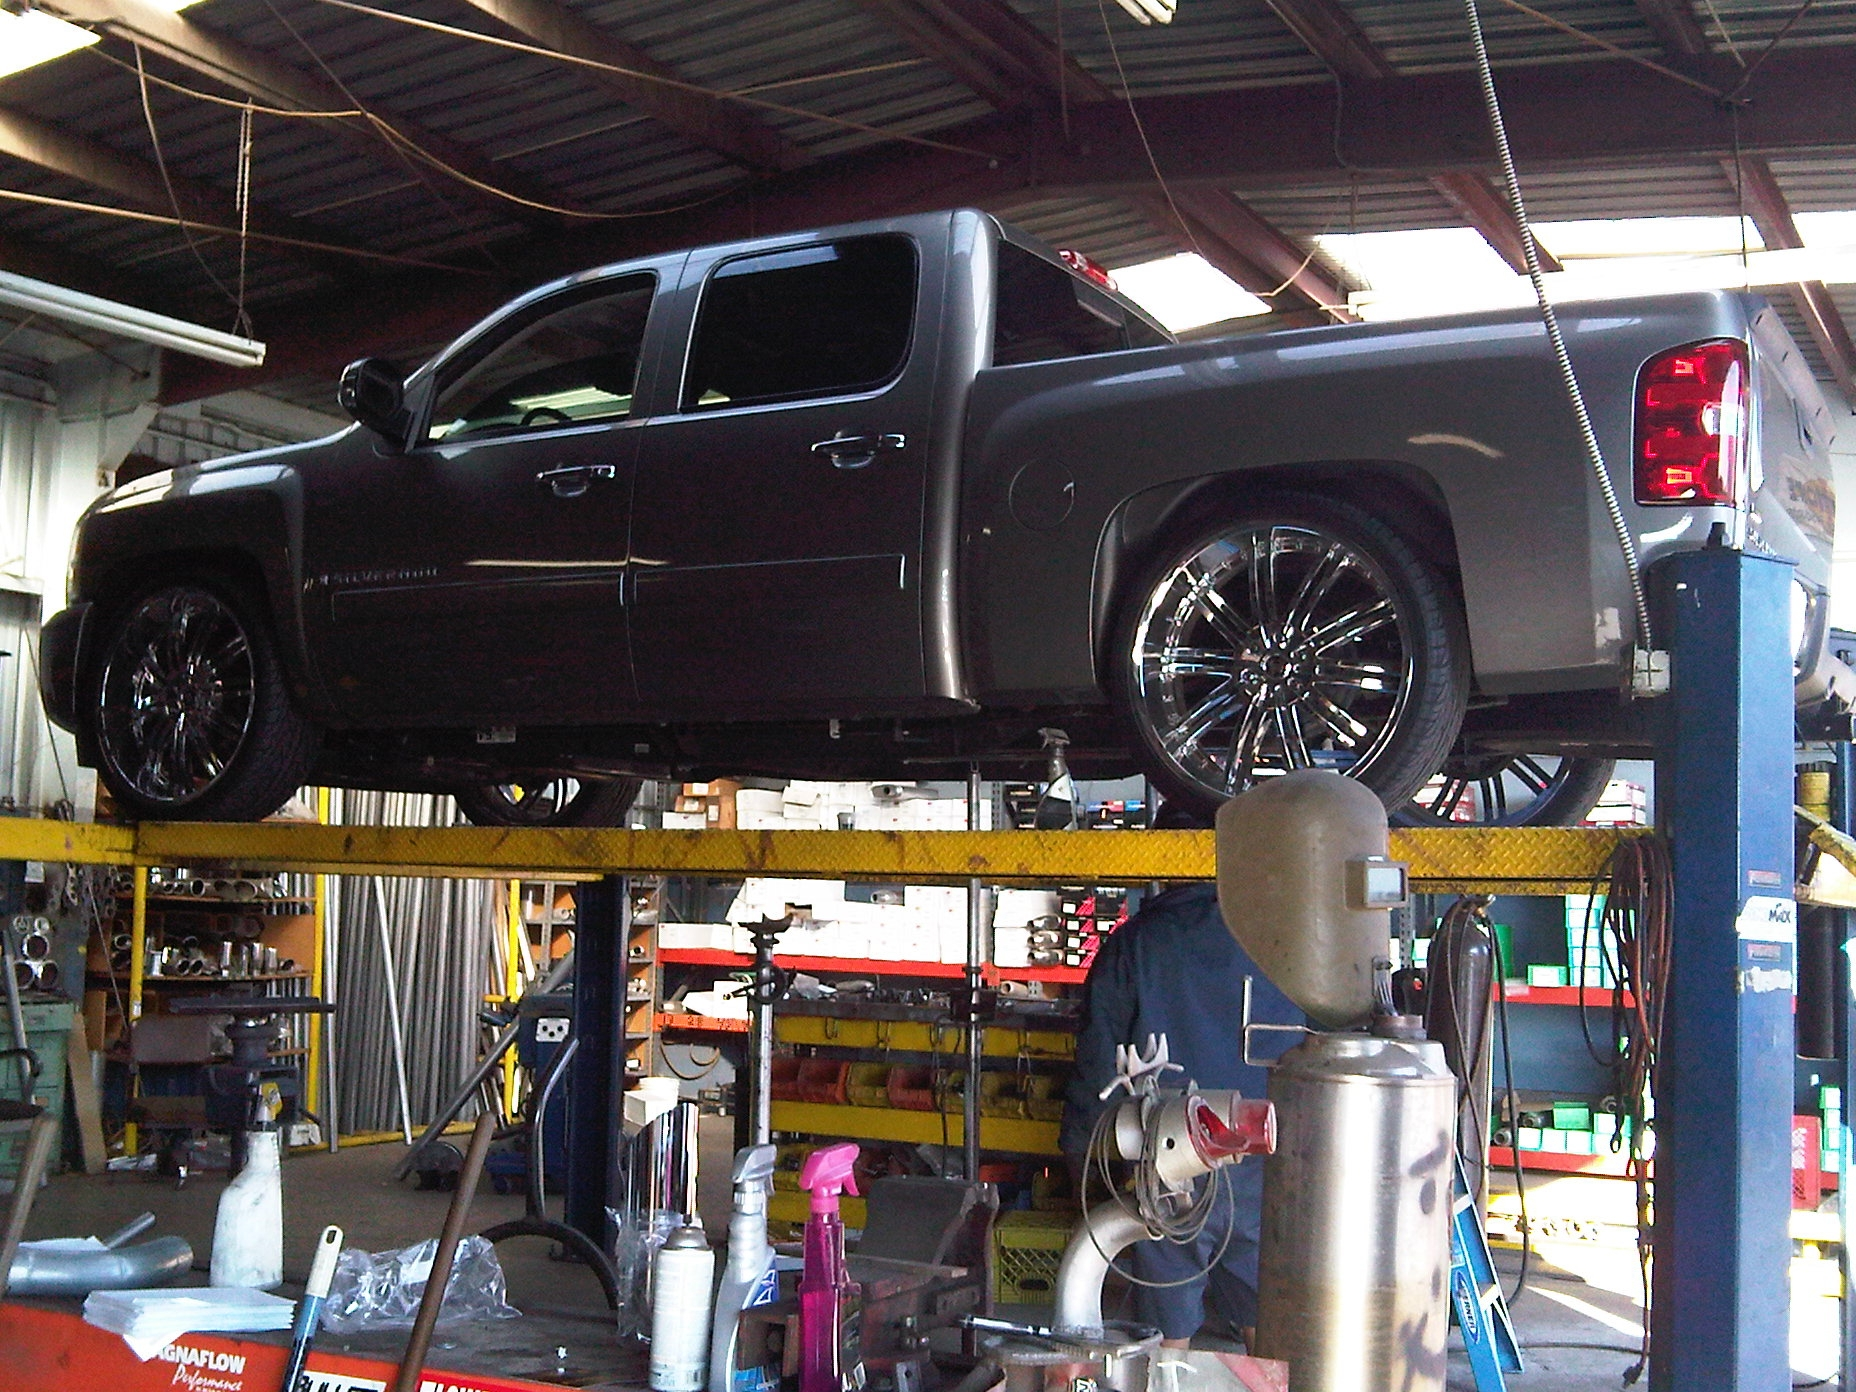 Another NutrishopChris 2008 Chevrolet Silverado 1500 Crew Cab post... - 13822616